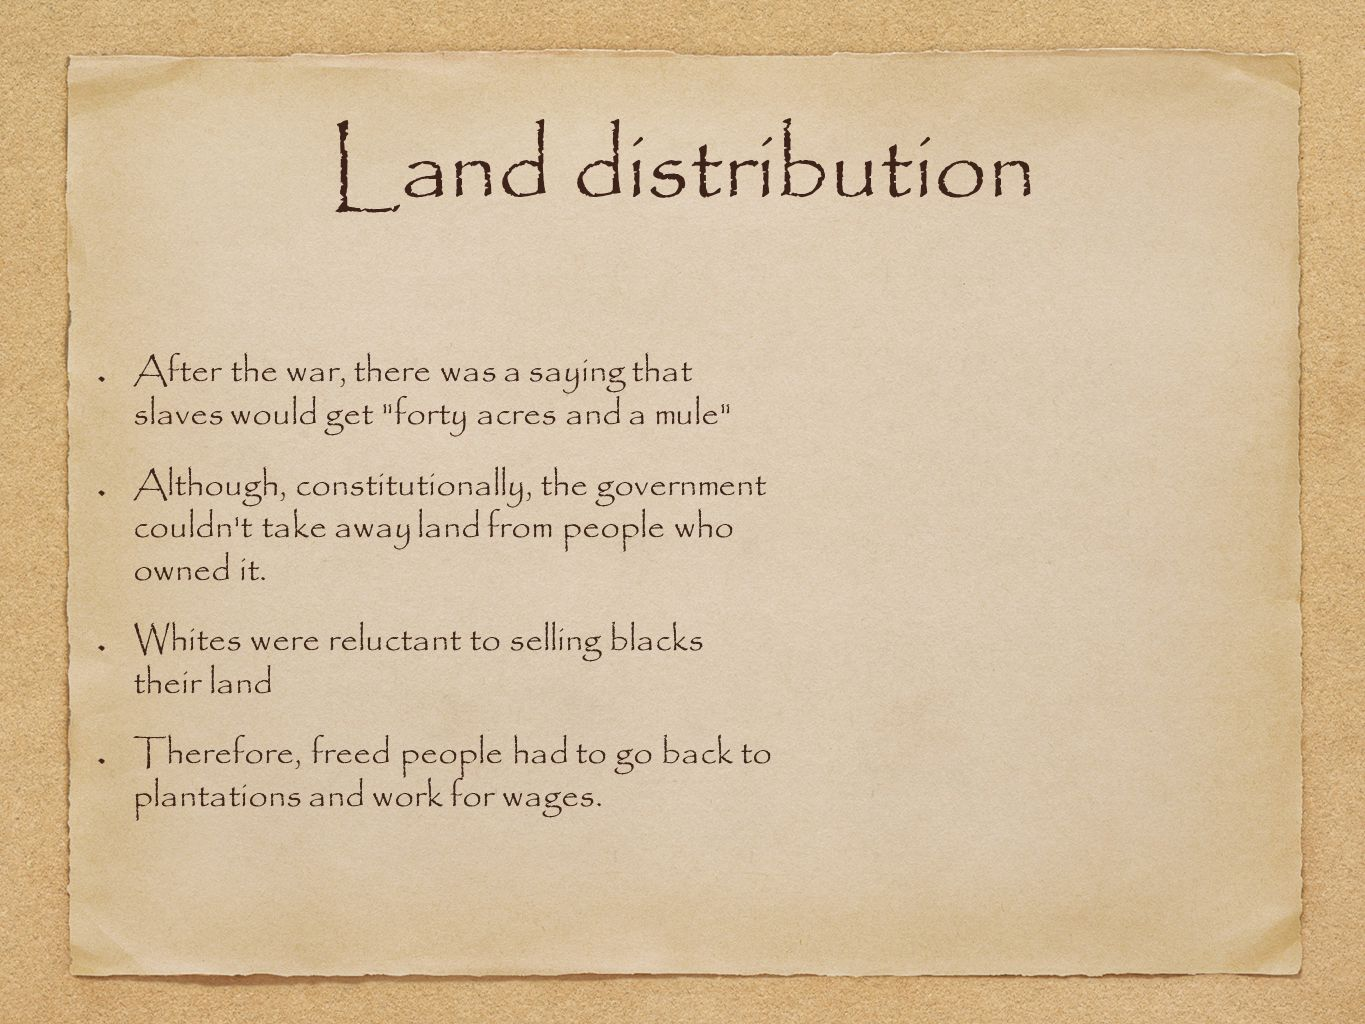 Land distribution After the war, there was a saying that slaves would get forty acres and a mule Although, constitutionally, the government couldn t take away land from people who owned it.